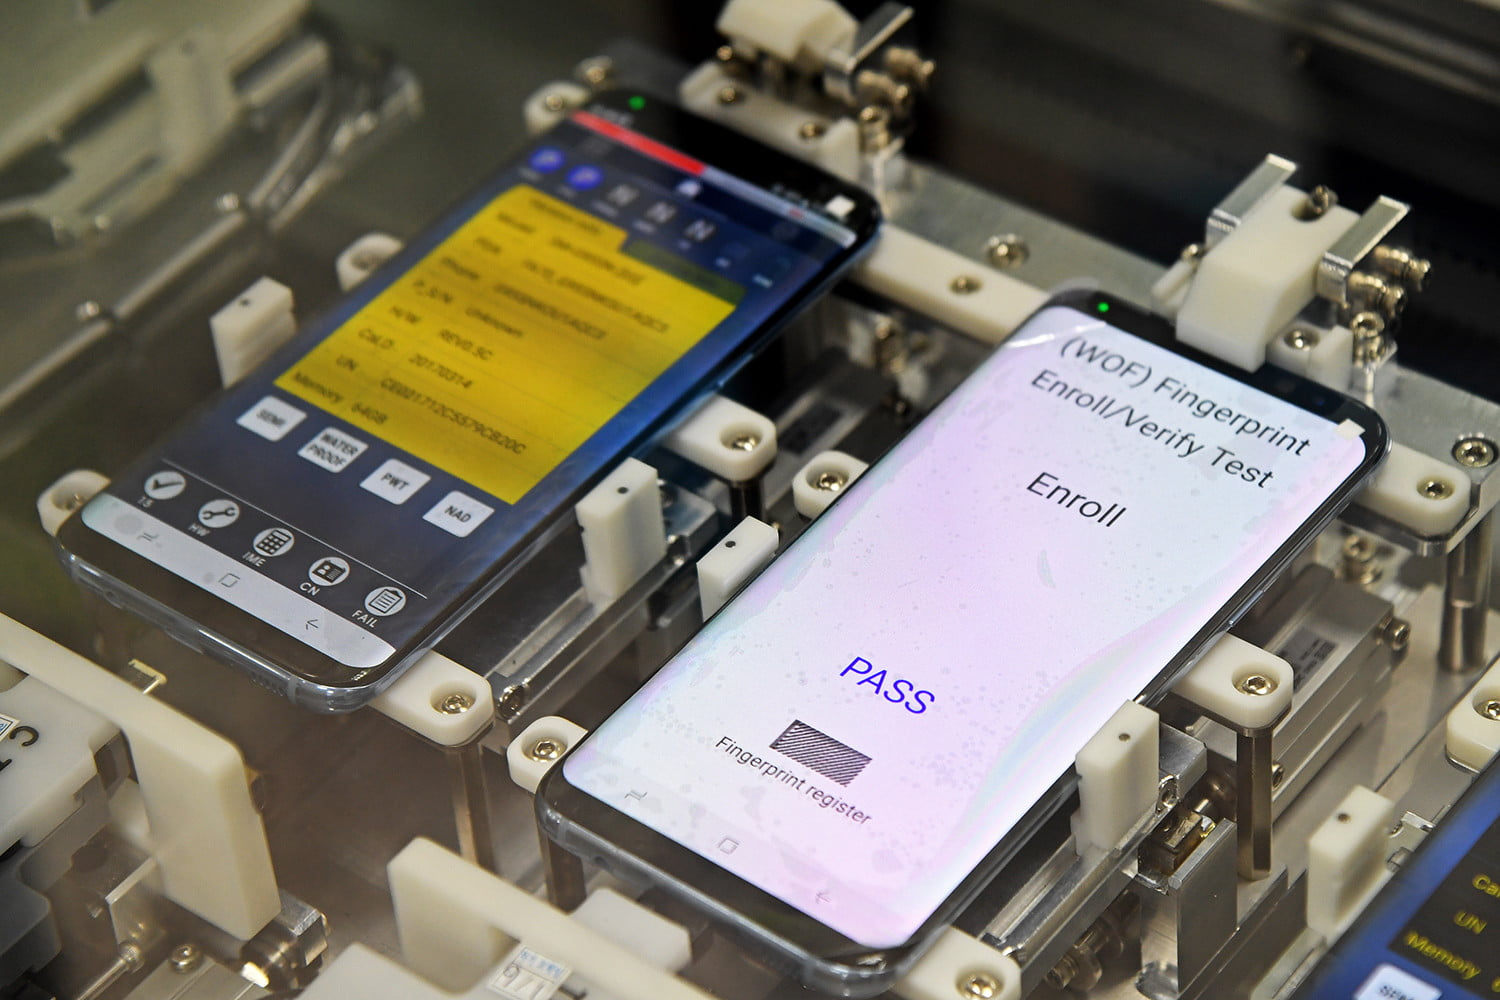 How Samsung Built The Galaxy S8 Design Battery Tech Features And Cell Phone Circuit Board Under Fused Glass It39s Been About Behind Scenes Designed Samsungfactorytour 001 5